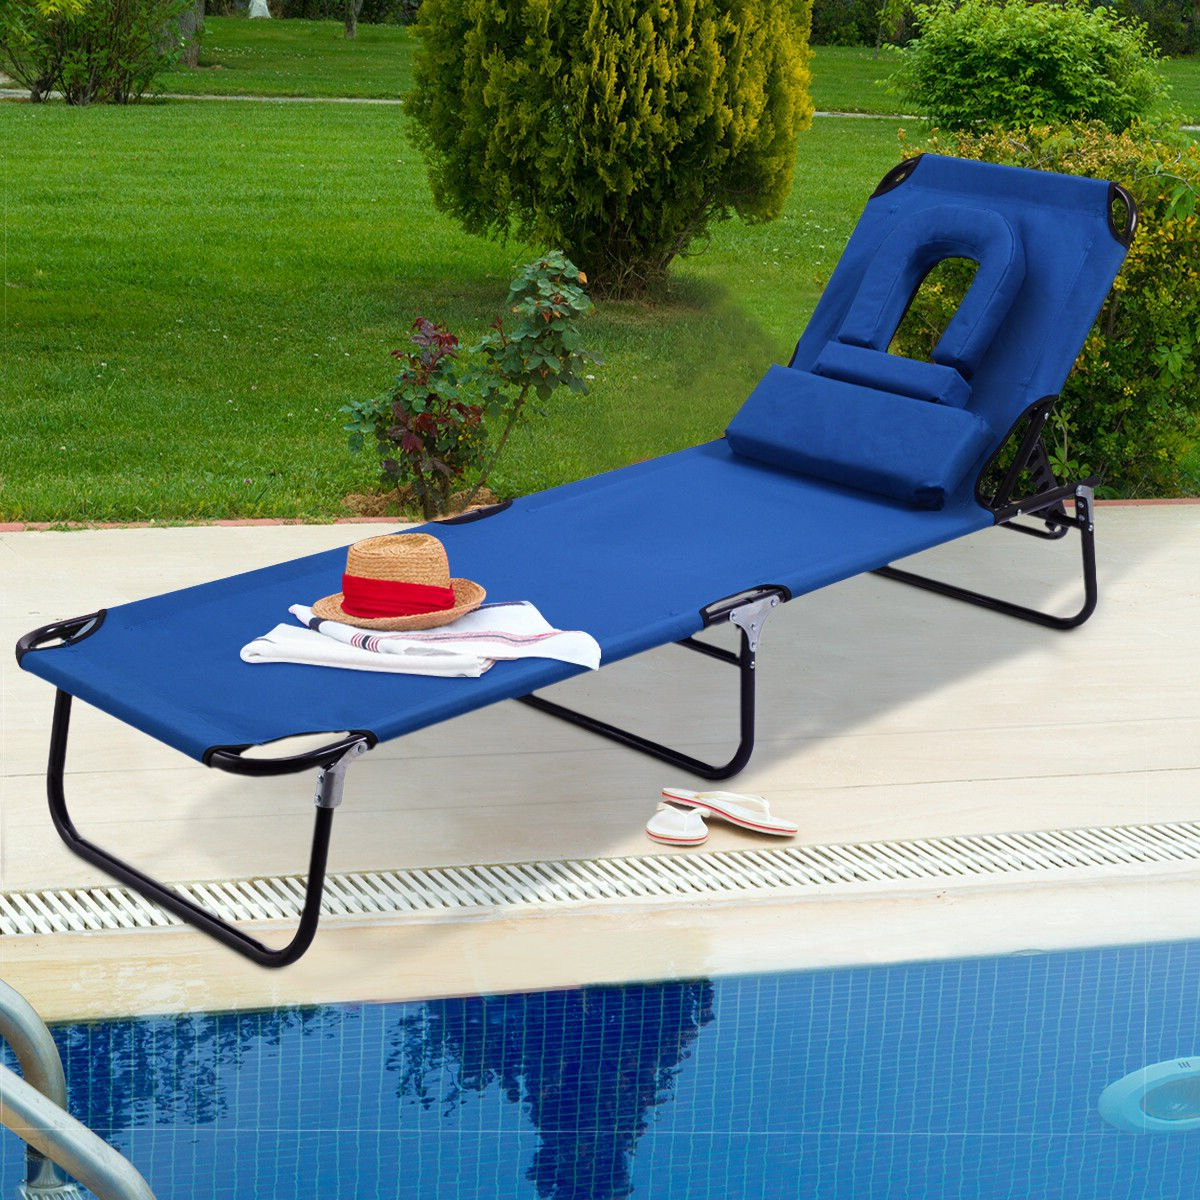 Outdoor Multi Position Chaise Lounges Regarding 2019 Costway Patio Foldable Chaise Lounge Chair Bed Outdoor Beach Camping  Recliner Pool Yard (View 16 of 25)